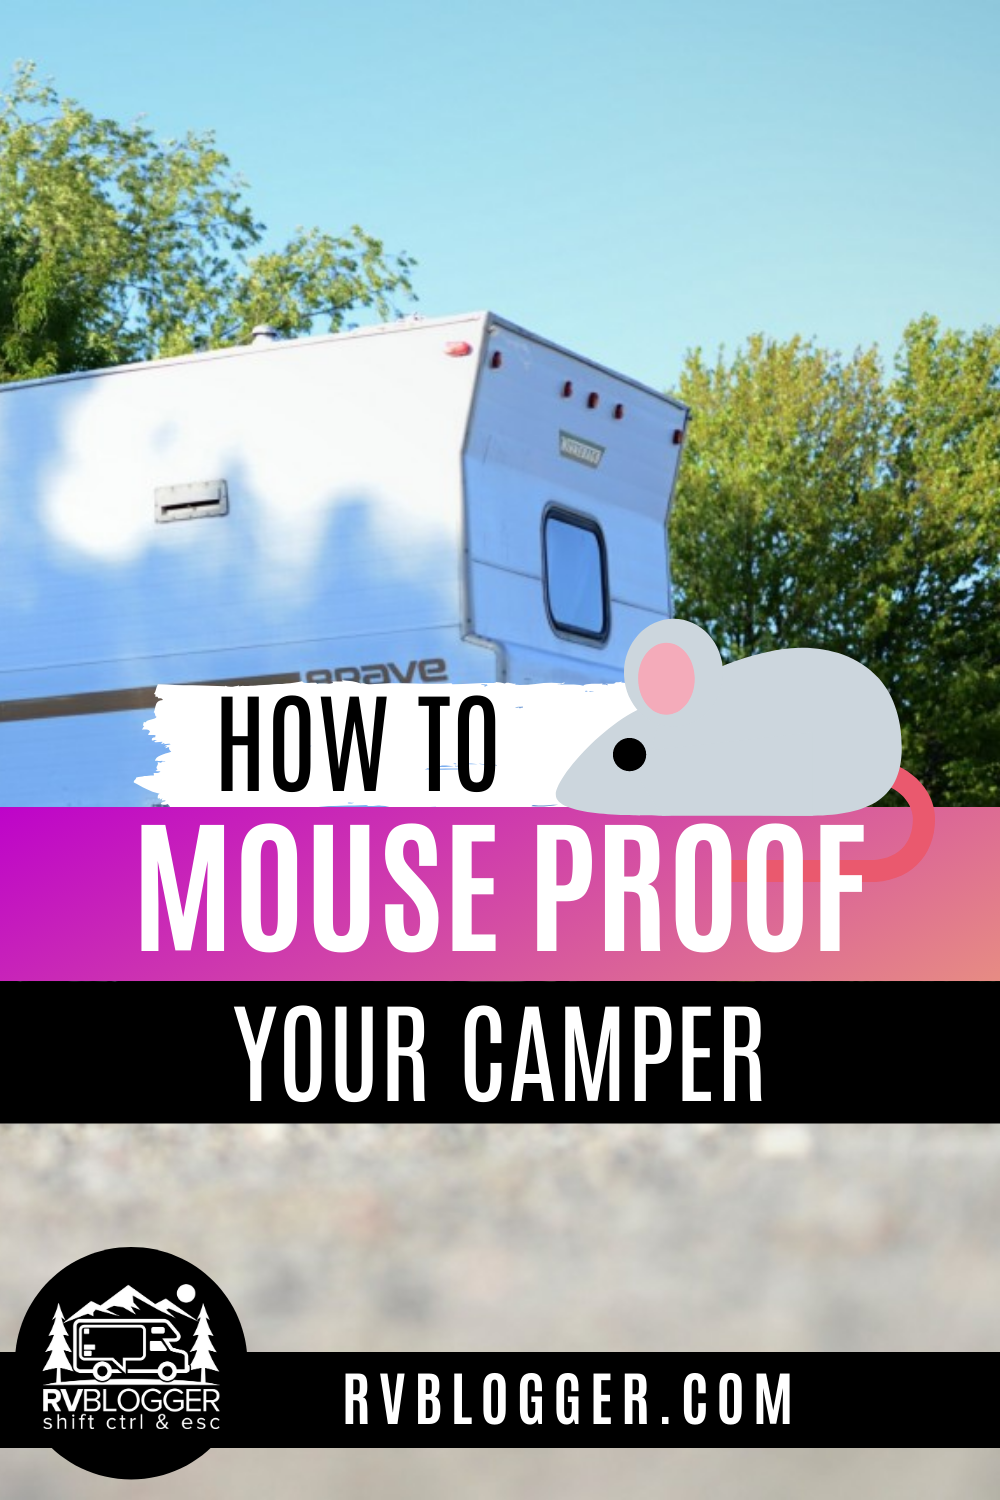 Do Dryer Sheets Keep Mice Away From RVs and Campers? – RVBlogger